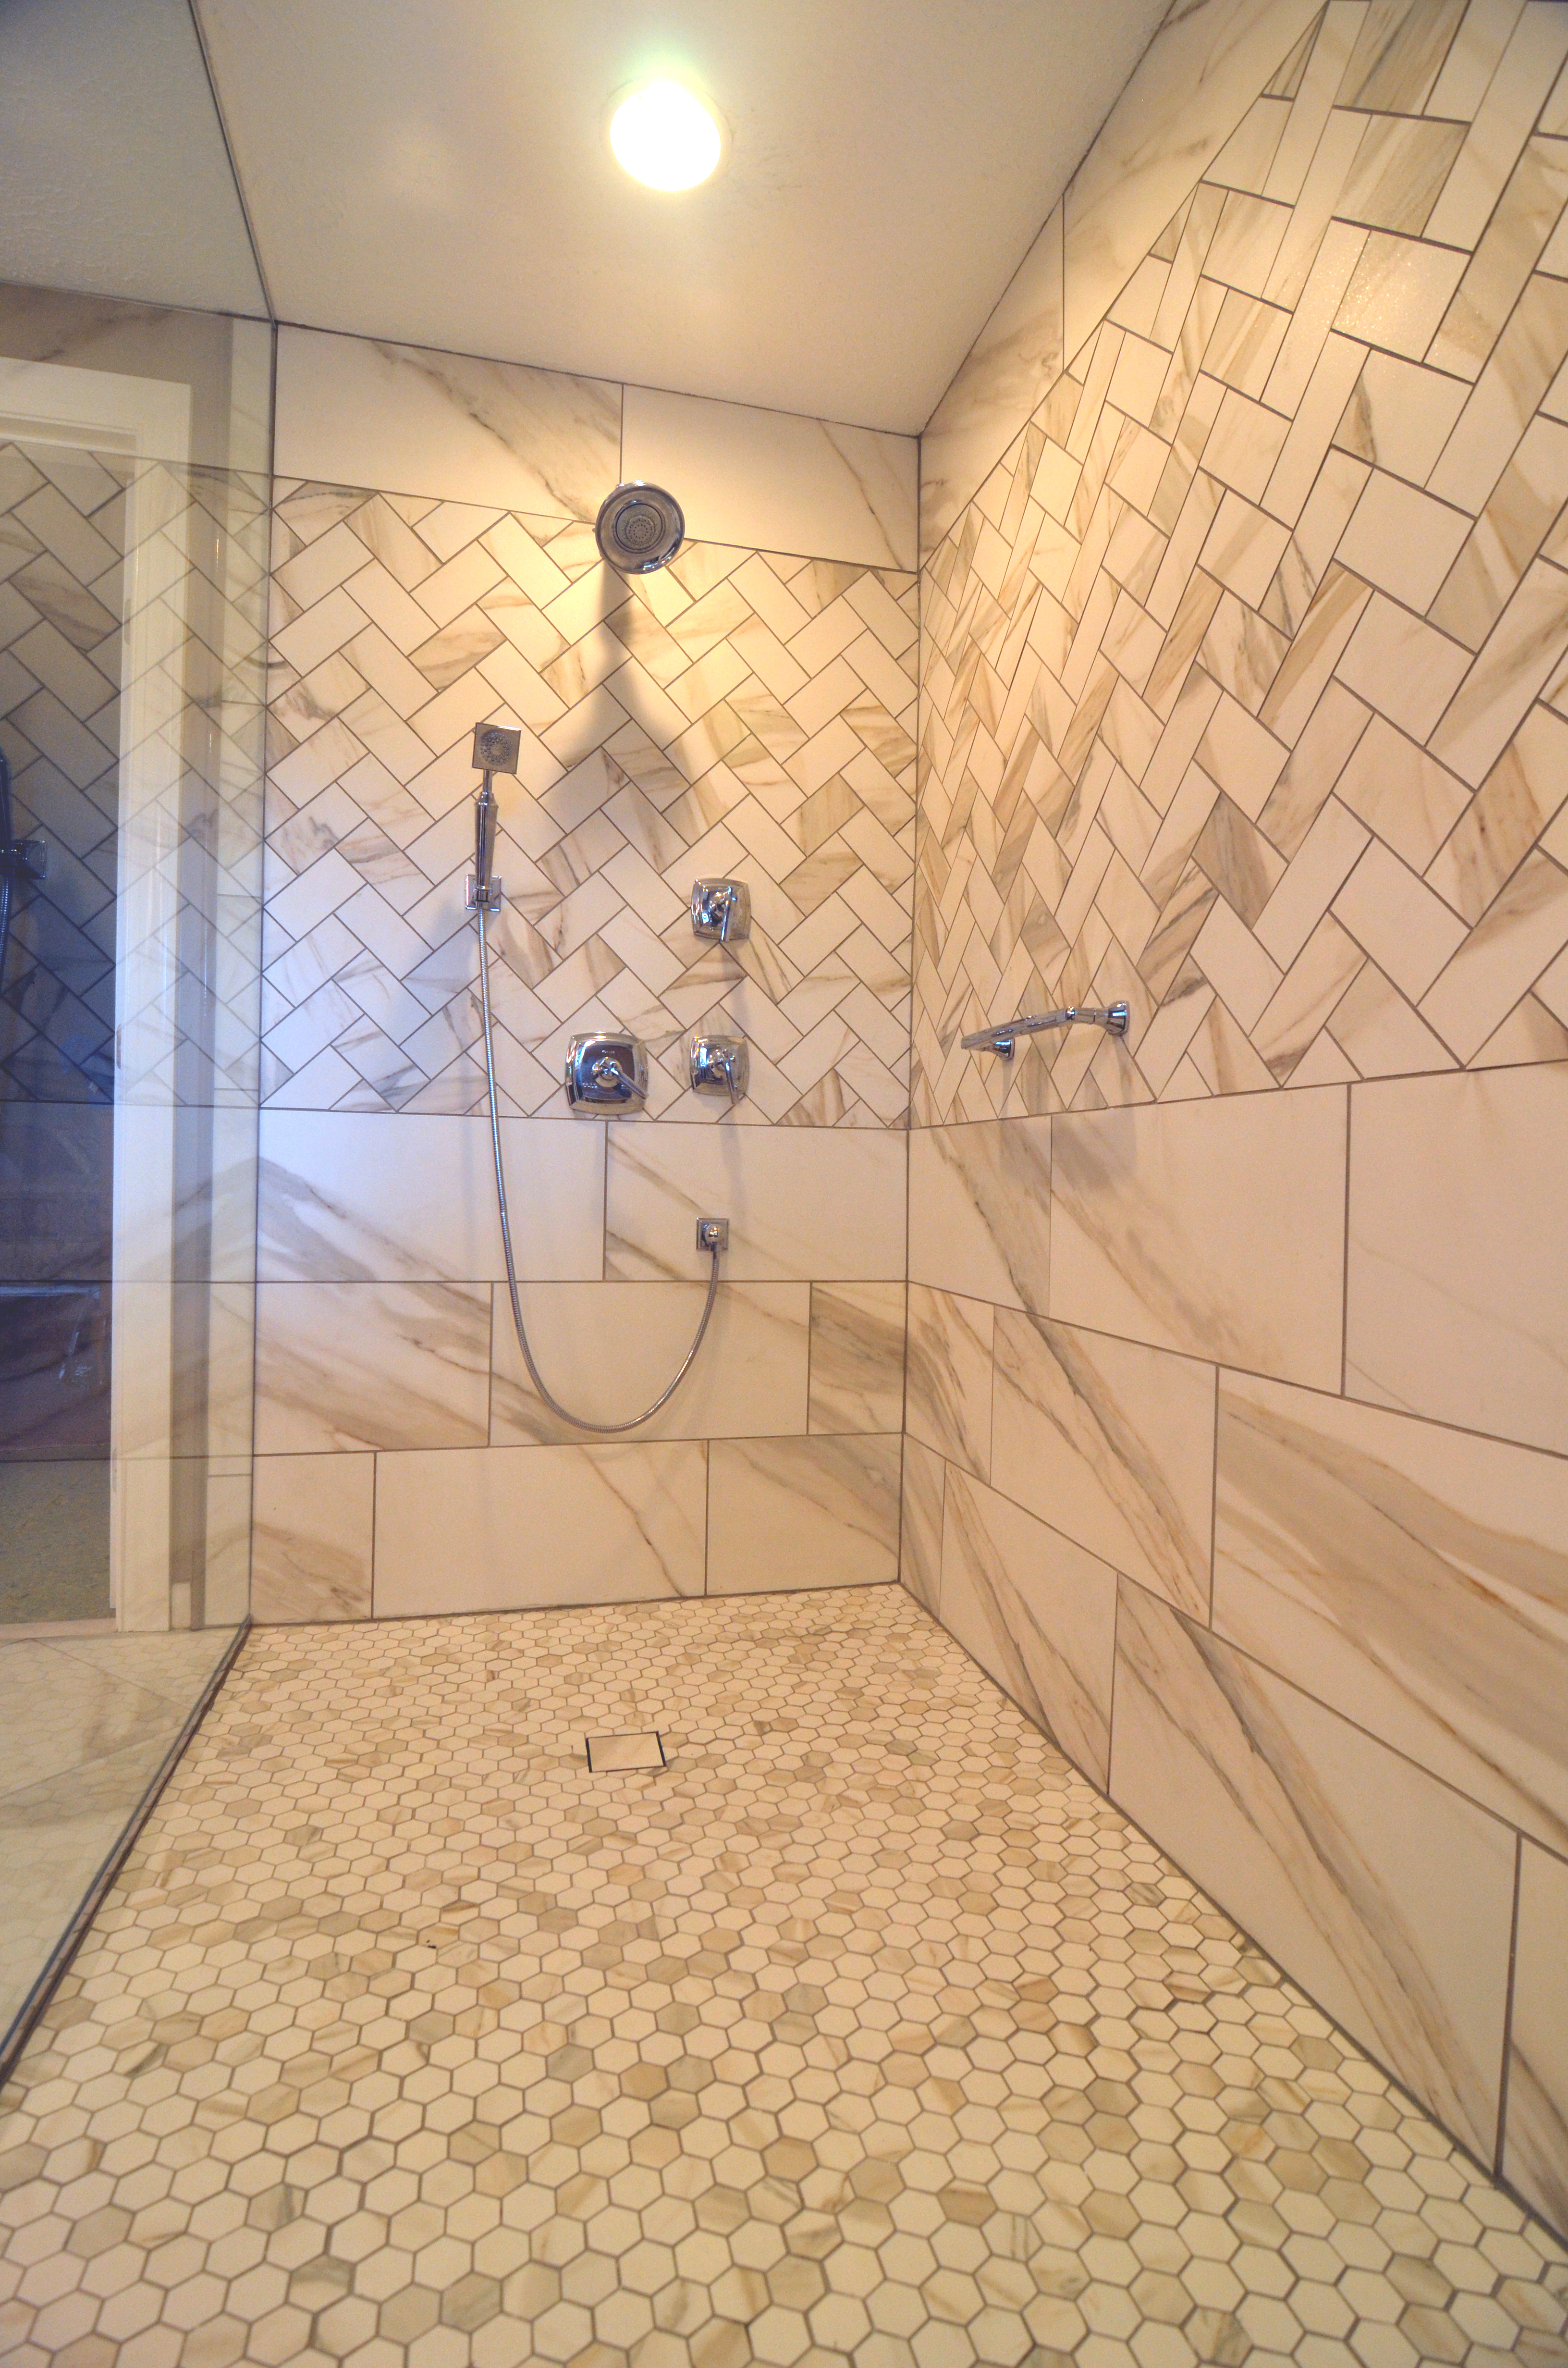 Marlton Master Bath With Barrier Free Shower By Next Level Remodeling - Bathroom remodeling south jersey